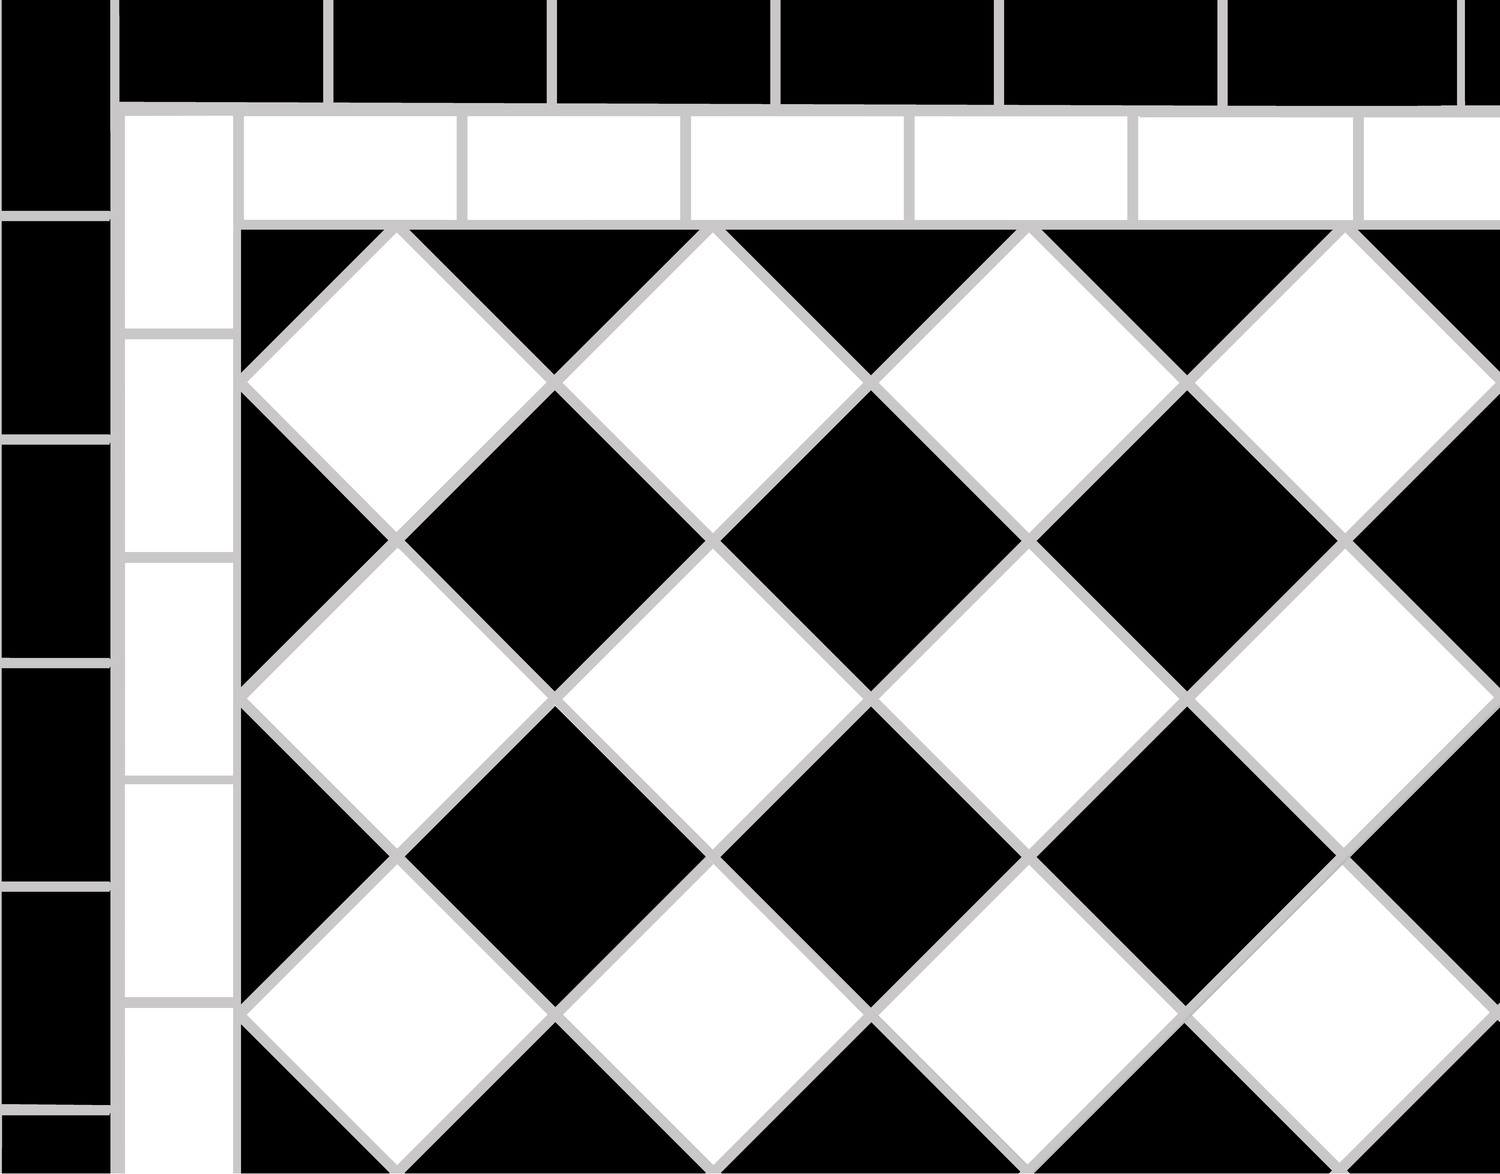 Black White 5cm Mosaic Path With Two Line Border Mosaics By Post